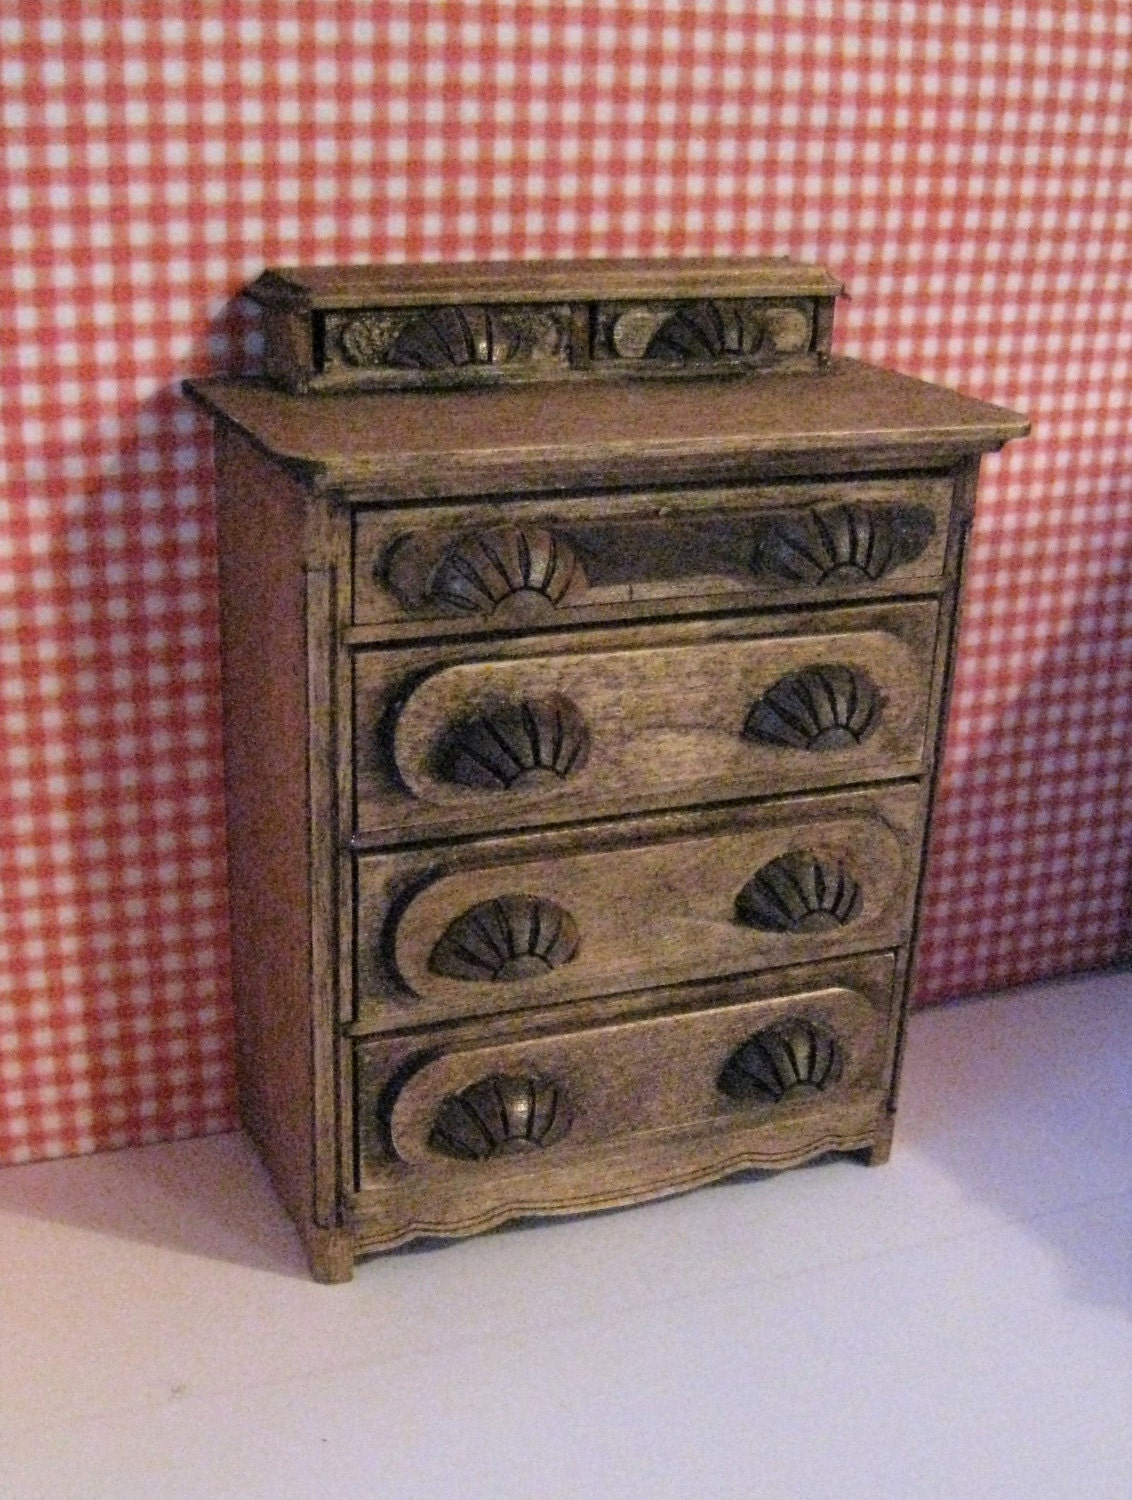 Dollhouse chest bedroom chest shell knobs chest of drawers  chest drawers country look dark oak twelfth scale